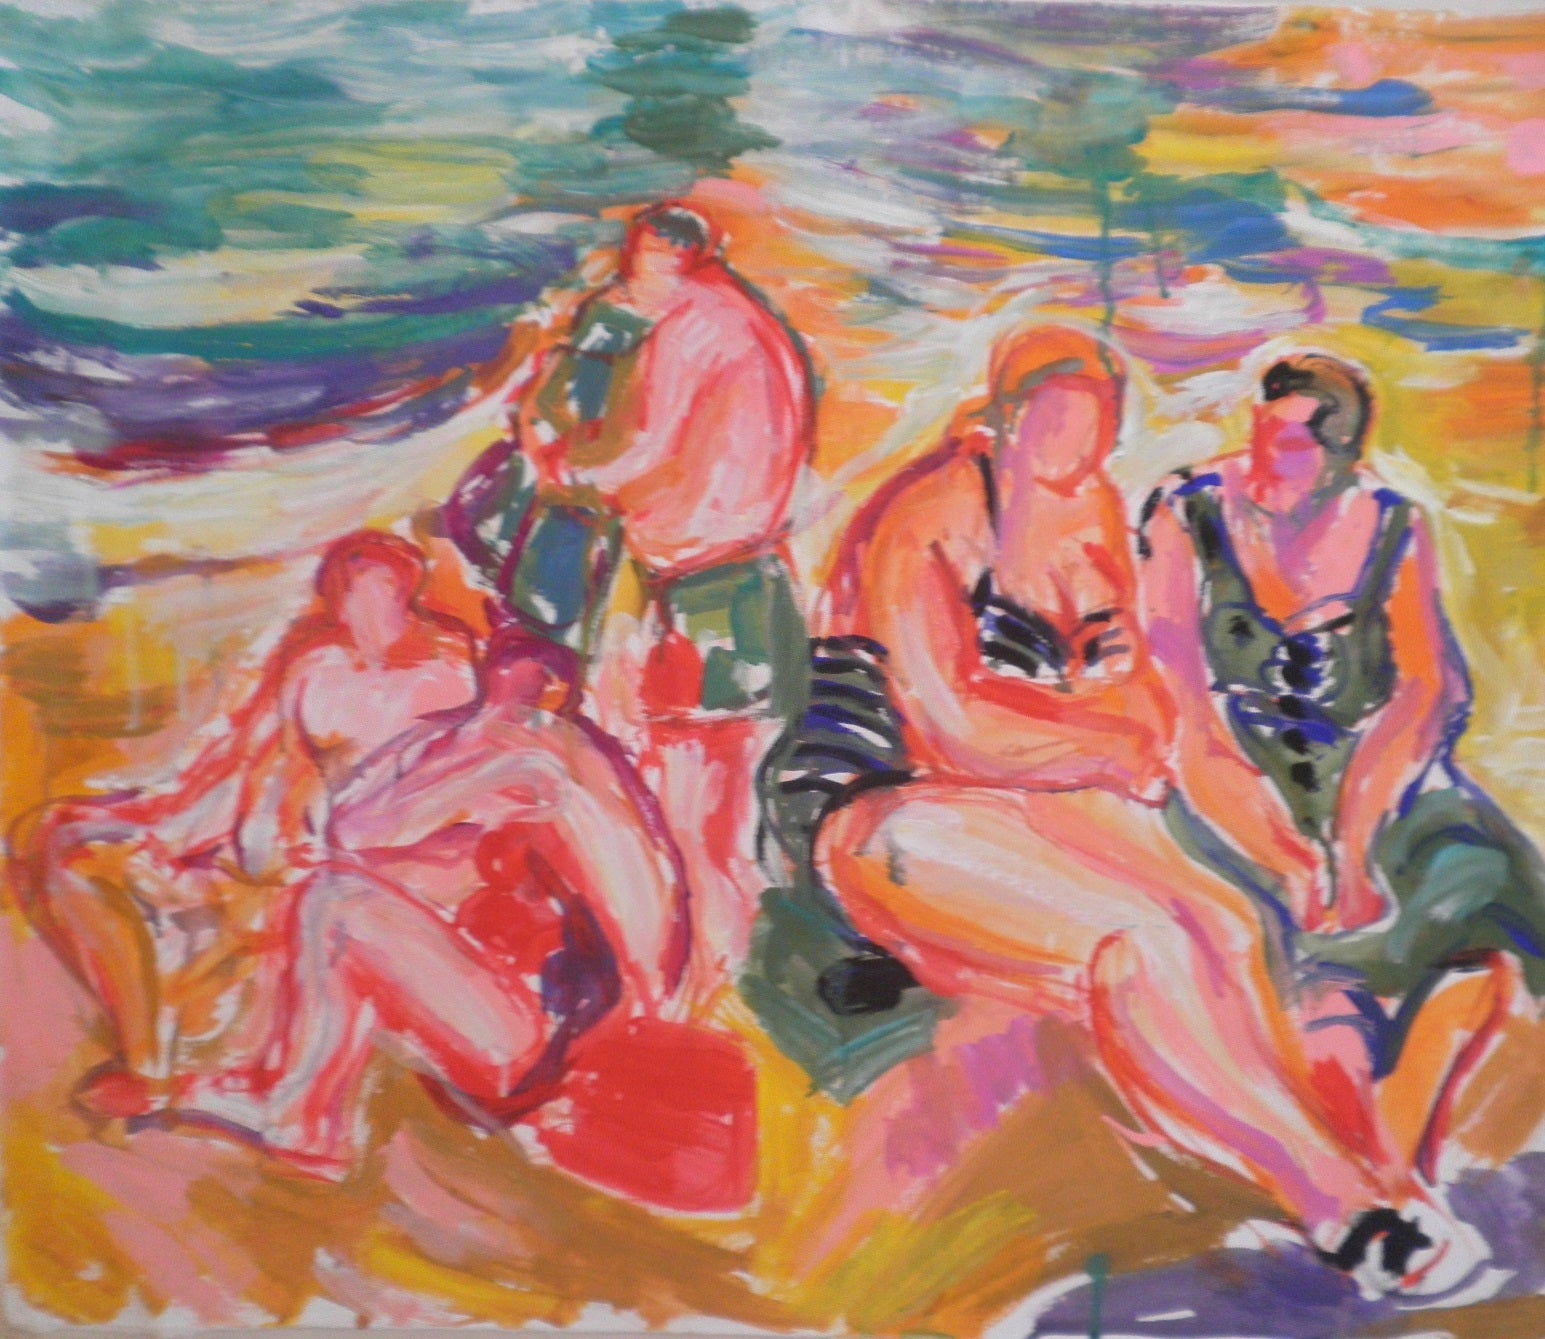 Bathers Confiding in Deep Conversations